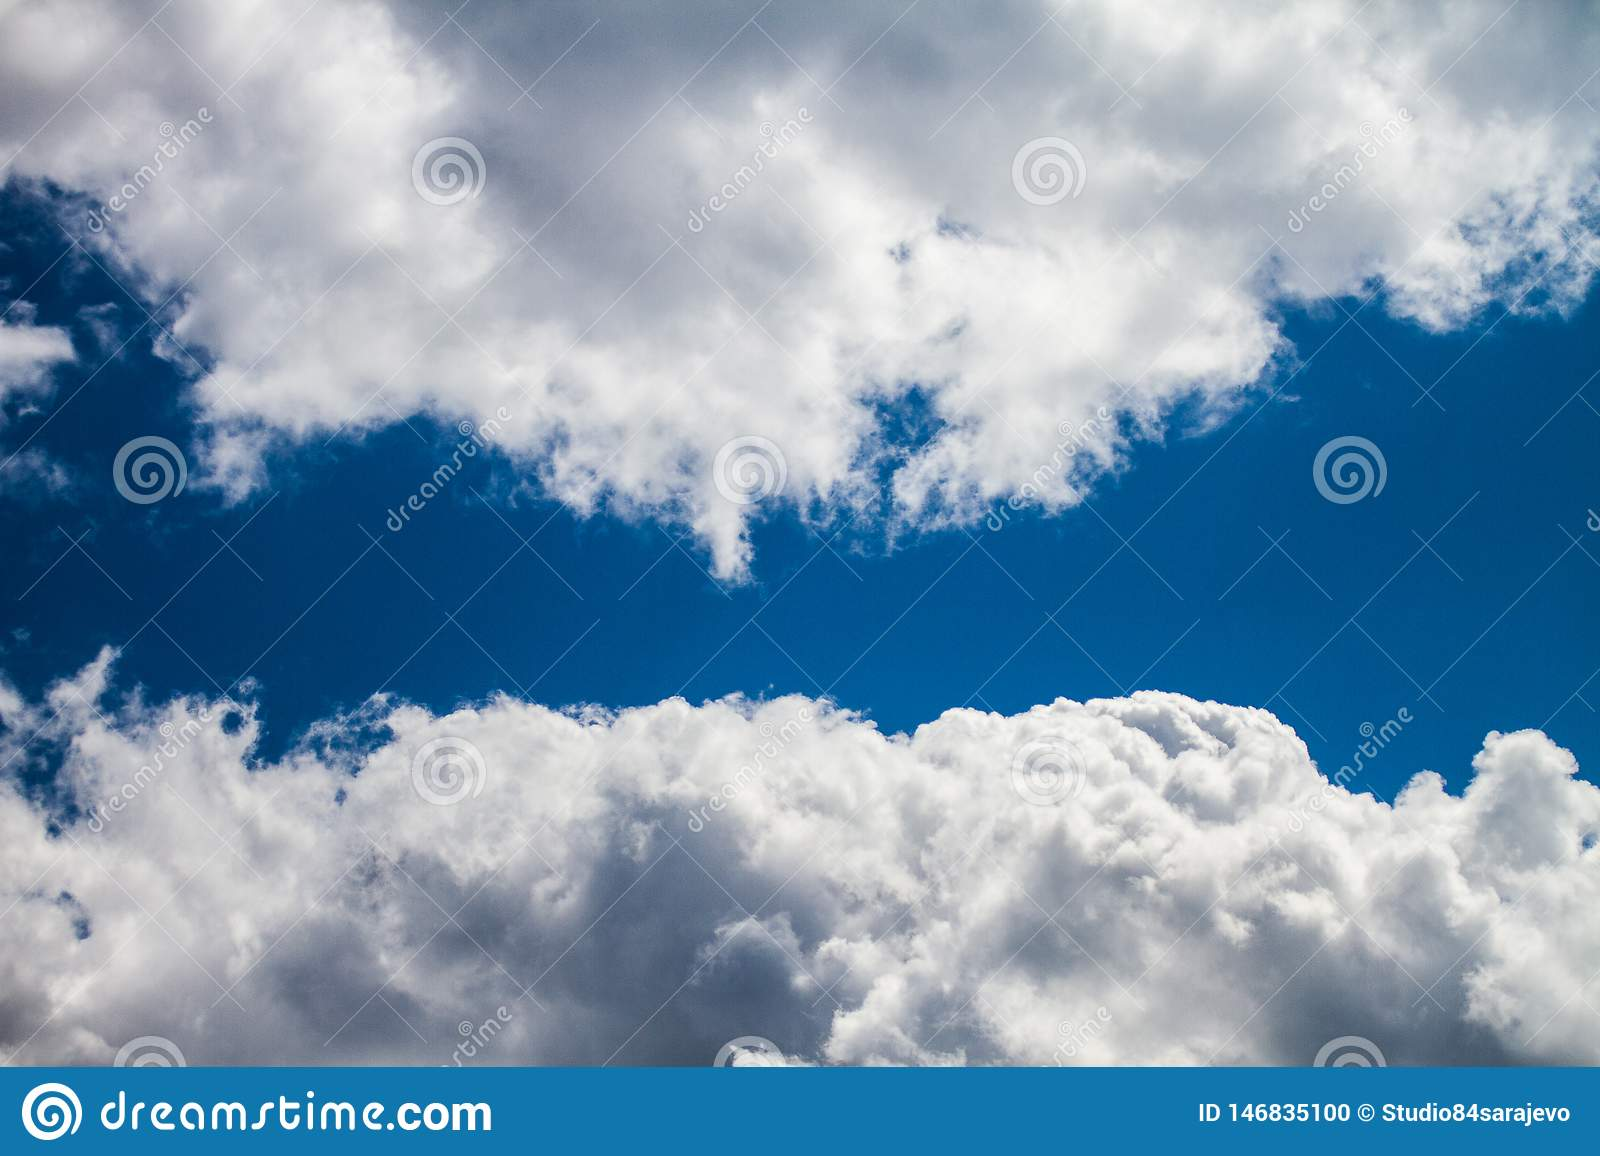 Celestial Navy Blue Sky With Clouds